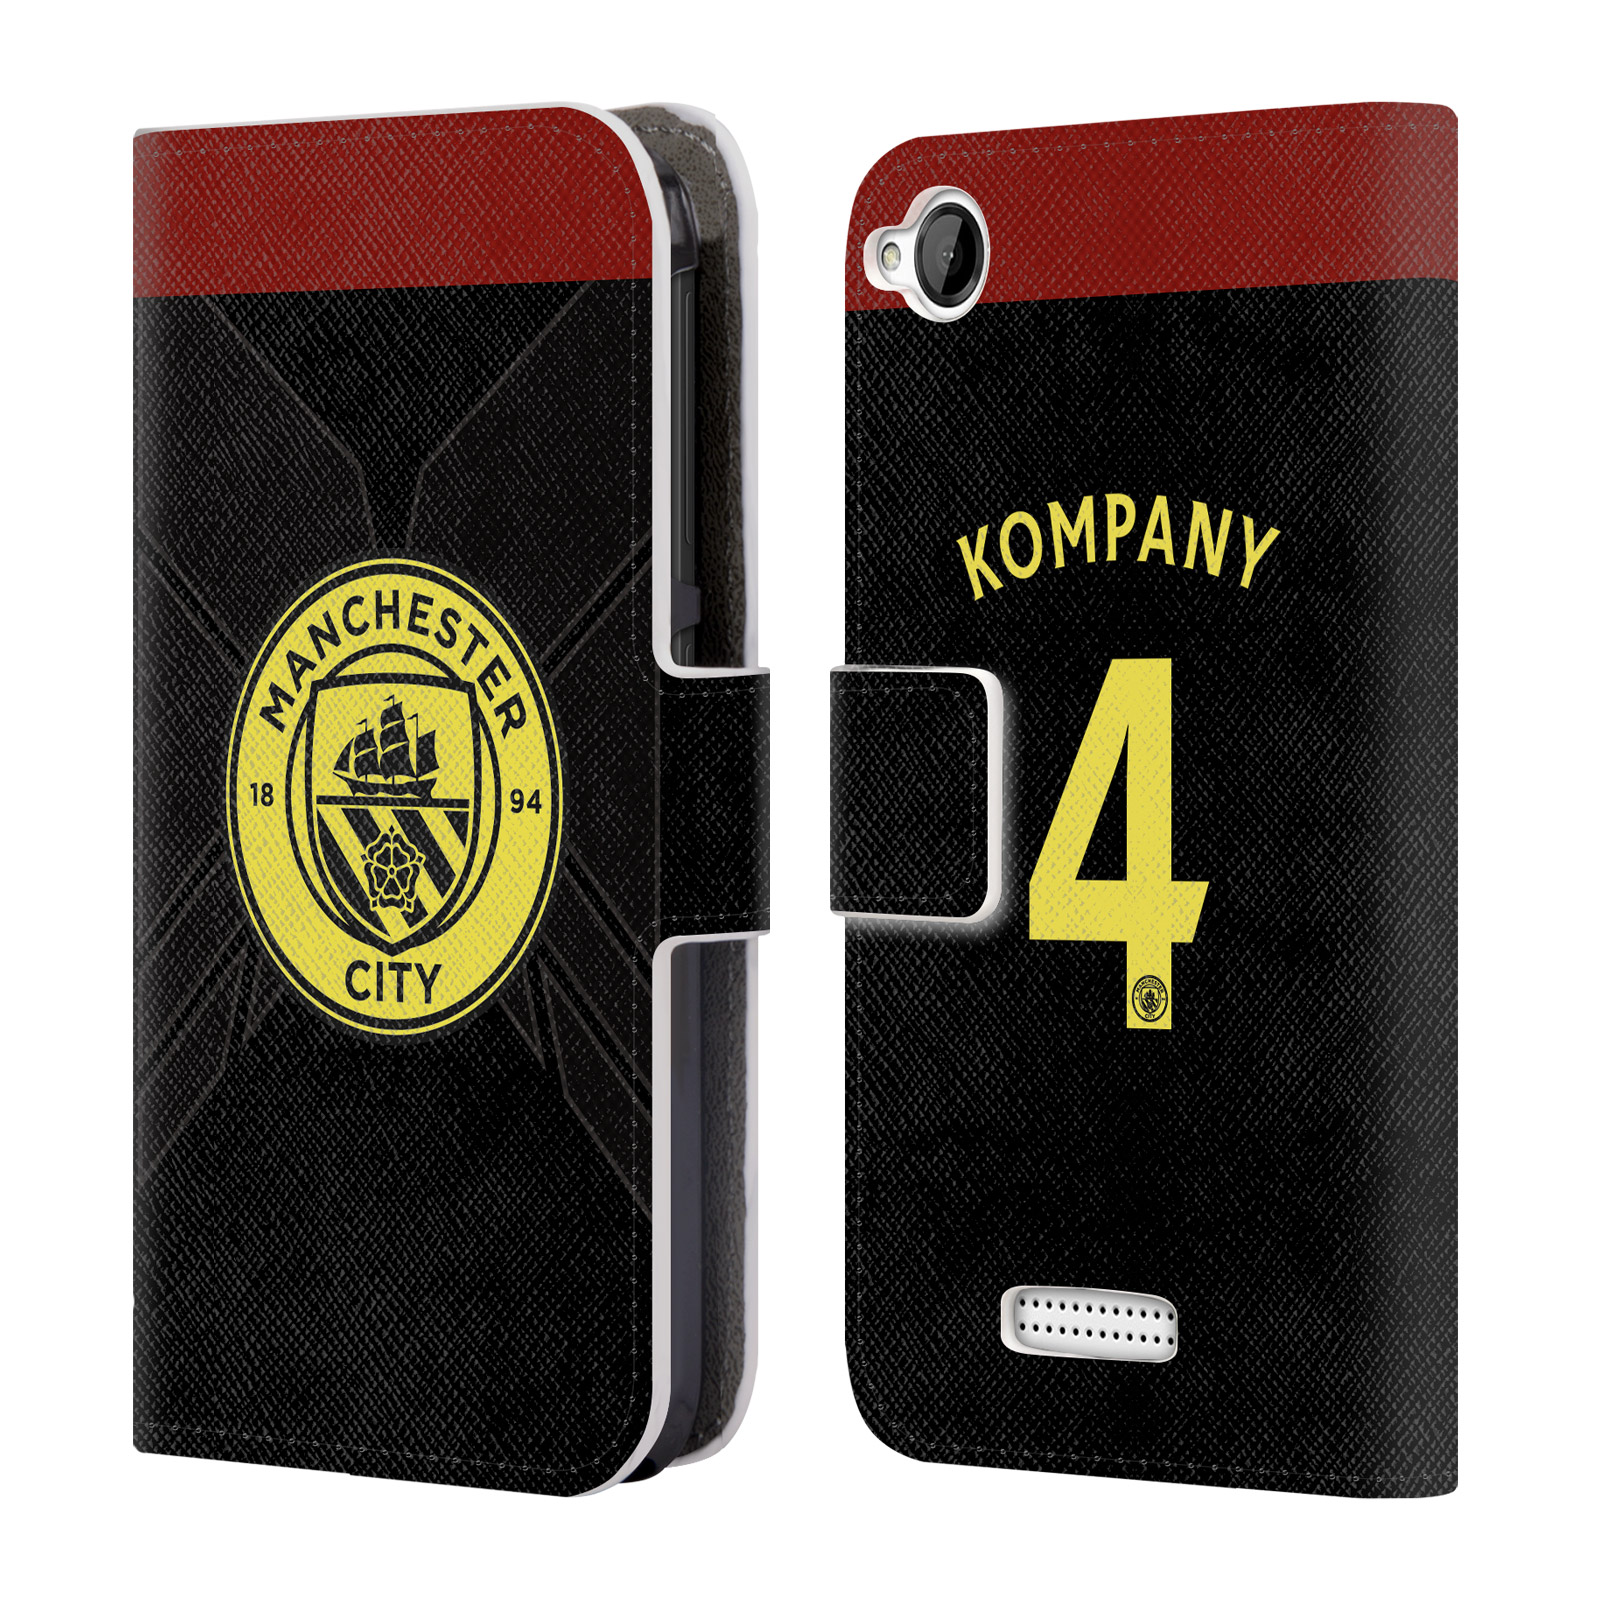 OFFICIAL MANCHESTER CITY MAN CITY FC AWAY KIT 2016/17 1 LEATHER BOOK WALLET CASE COVER FOR HTC PHONES 1